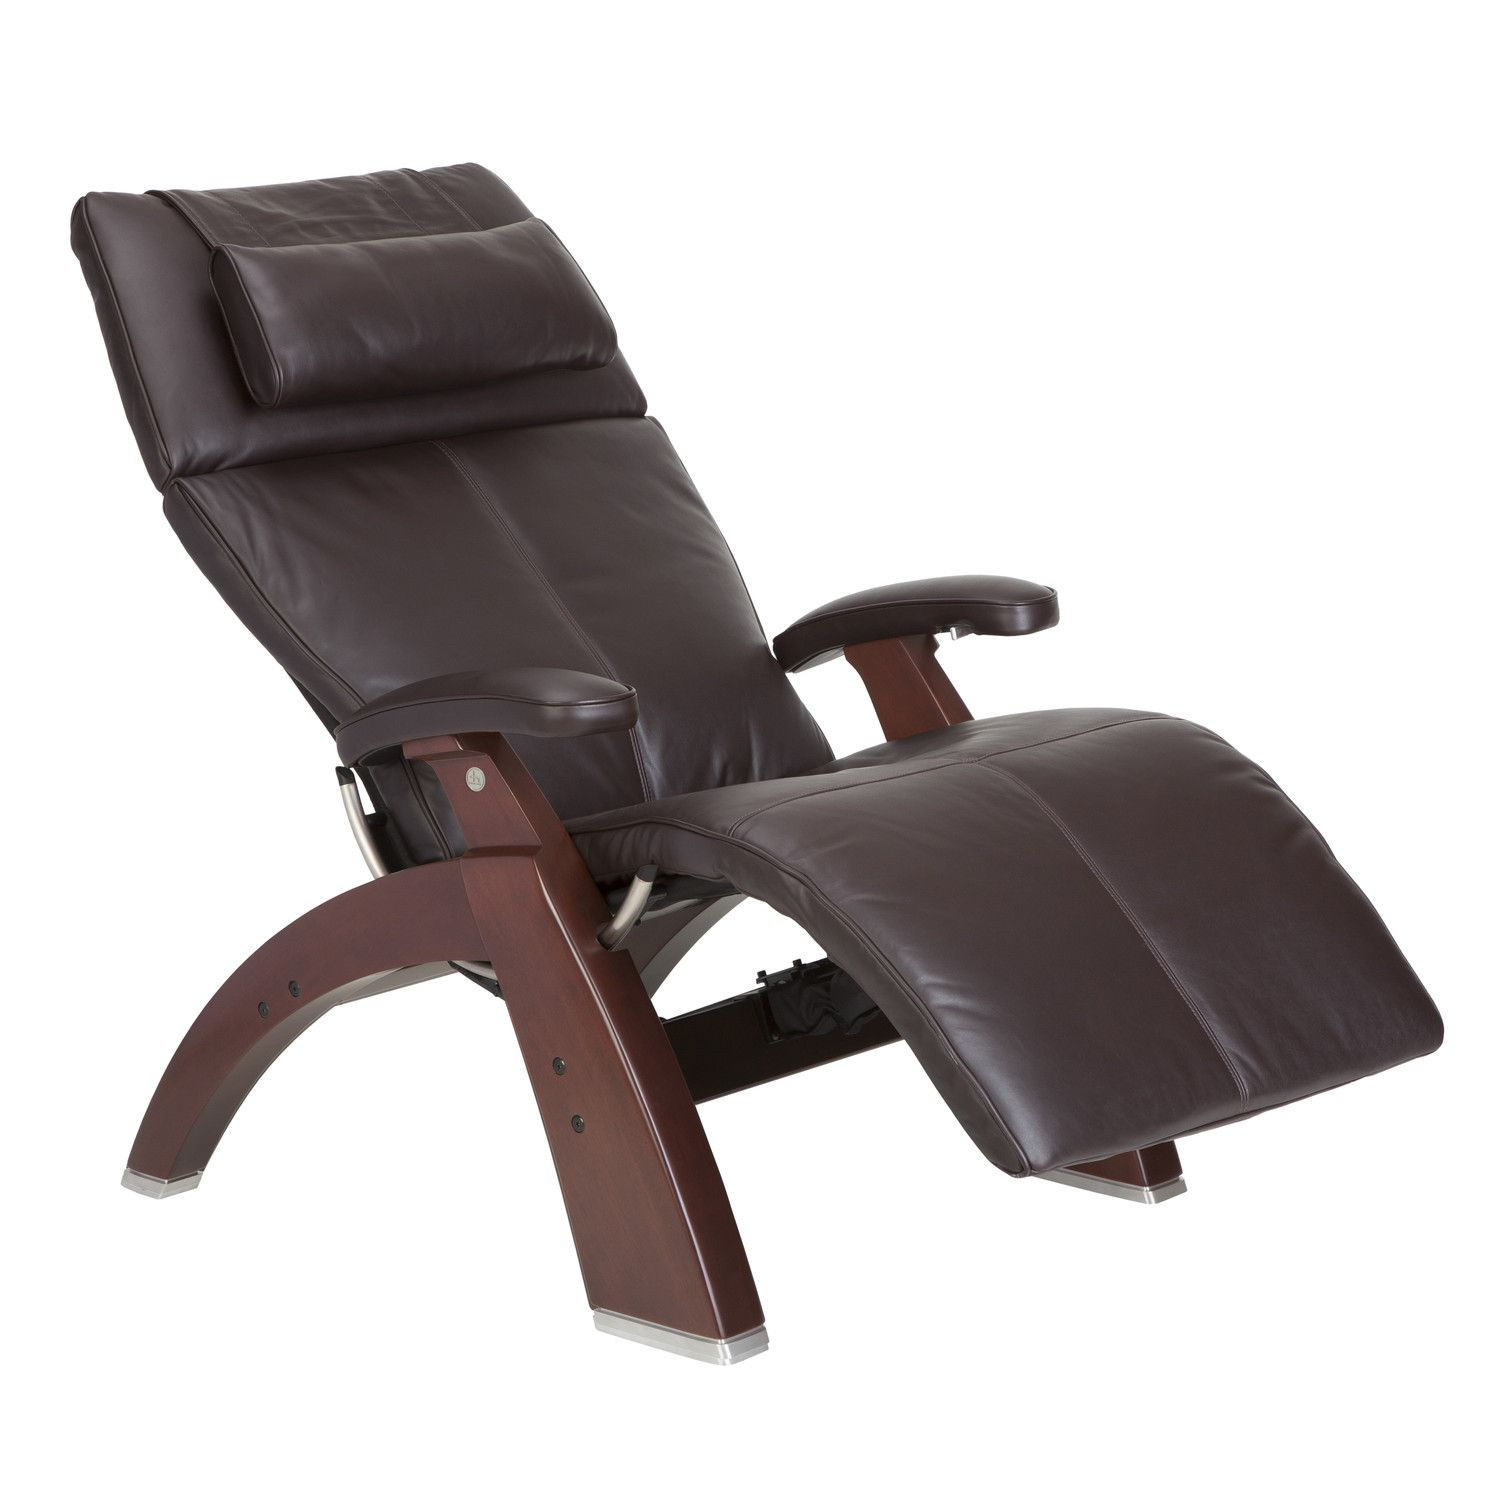 Furniture Modern Human Touch Perfect Chair Silhouette Zero Gravity Recliner Chairs With Dark Brown Perfect Chair Zero Gravity Recliner Modern Recliner Chairs